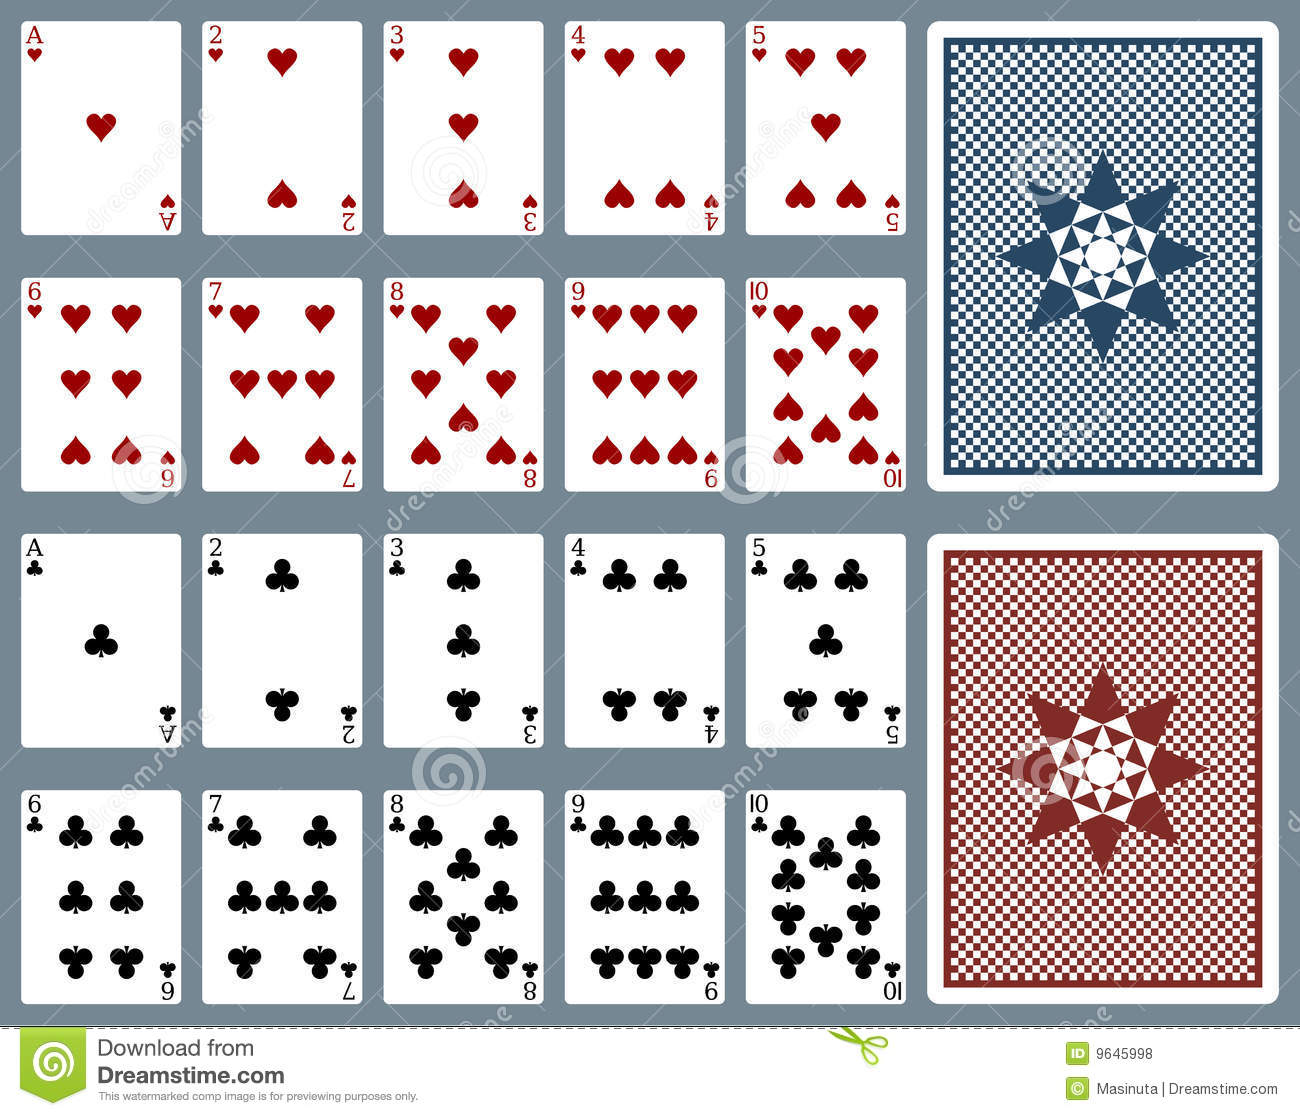 how to set up solitaire with 52 cards